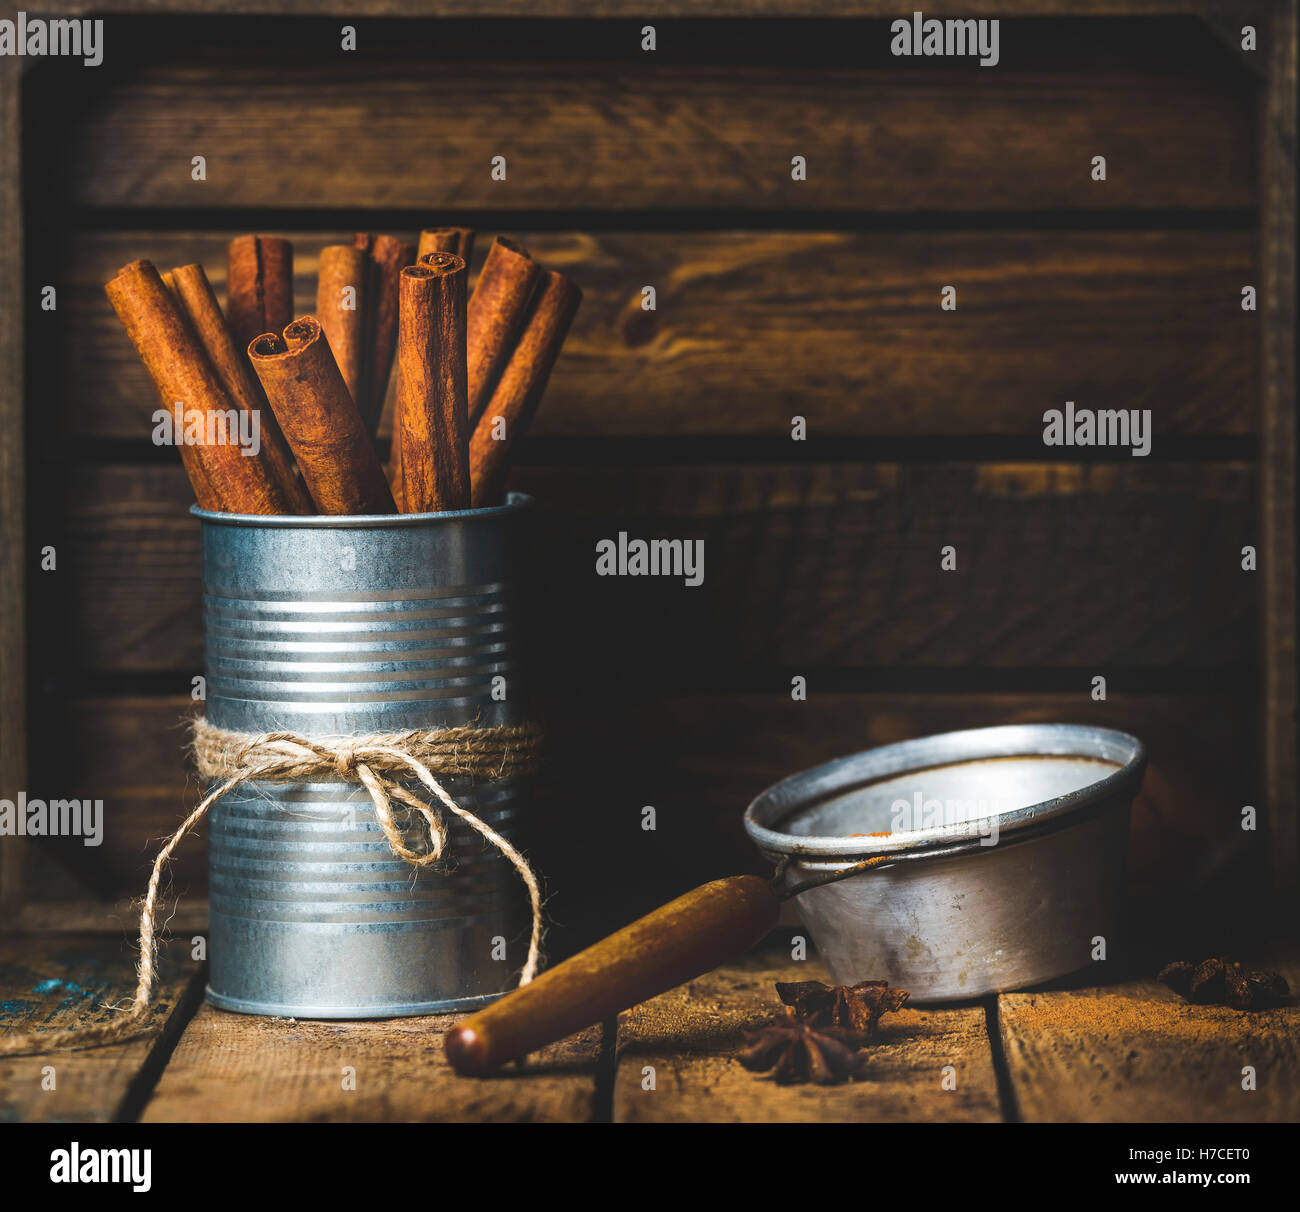 Cinnamon sticks in can tied with rope, anise stars and sieve on rustic wooden background, copy space - Stock Image